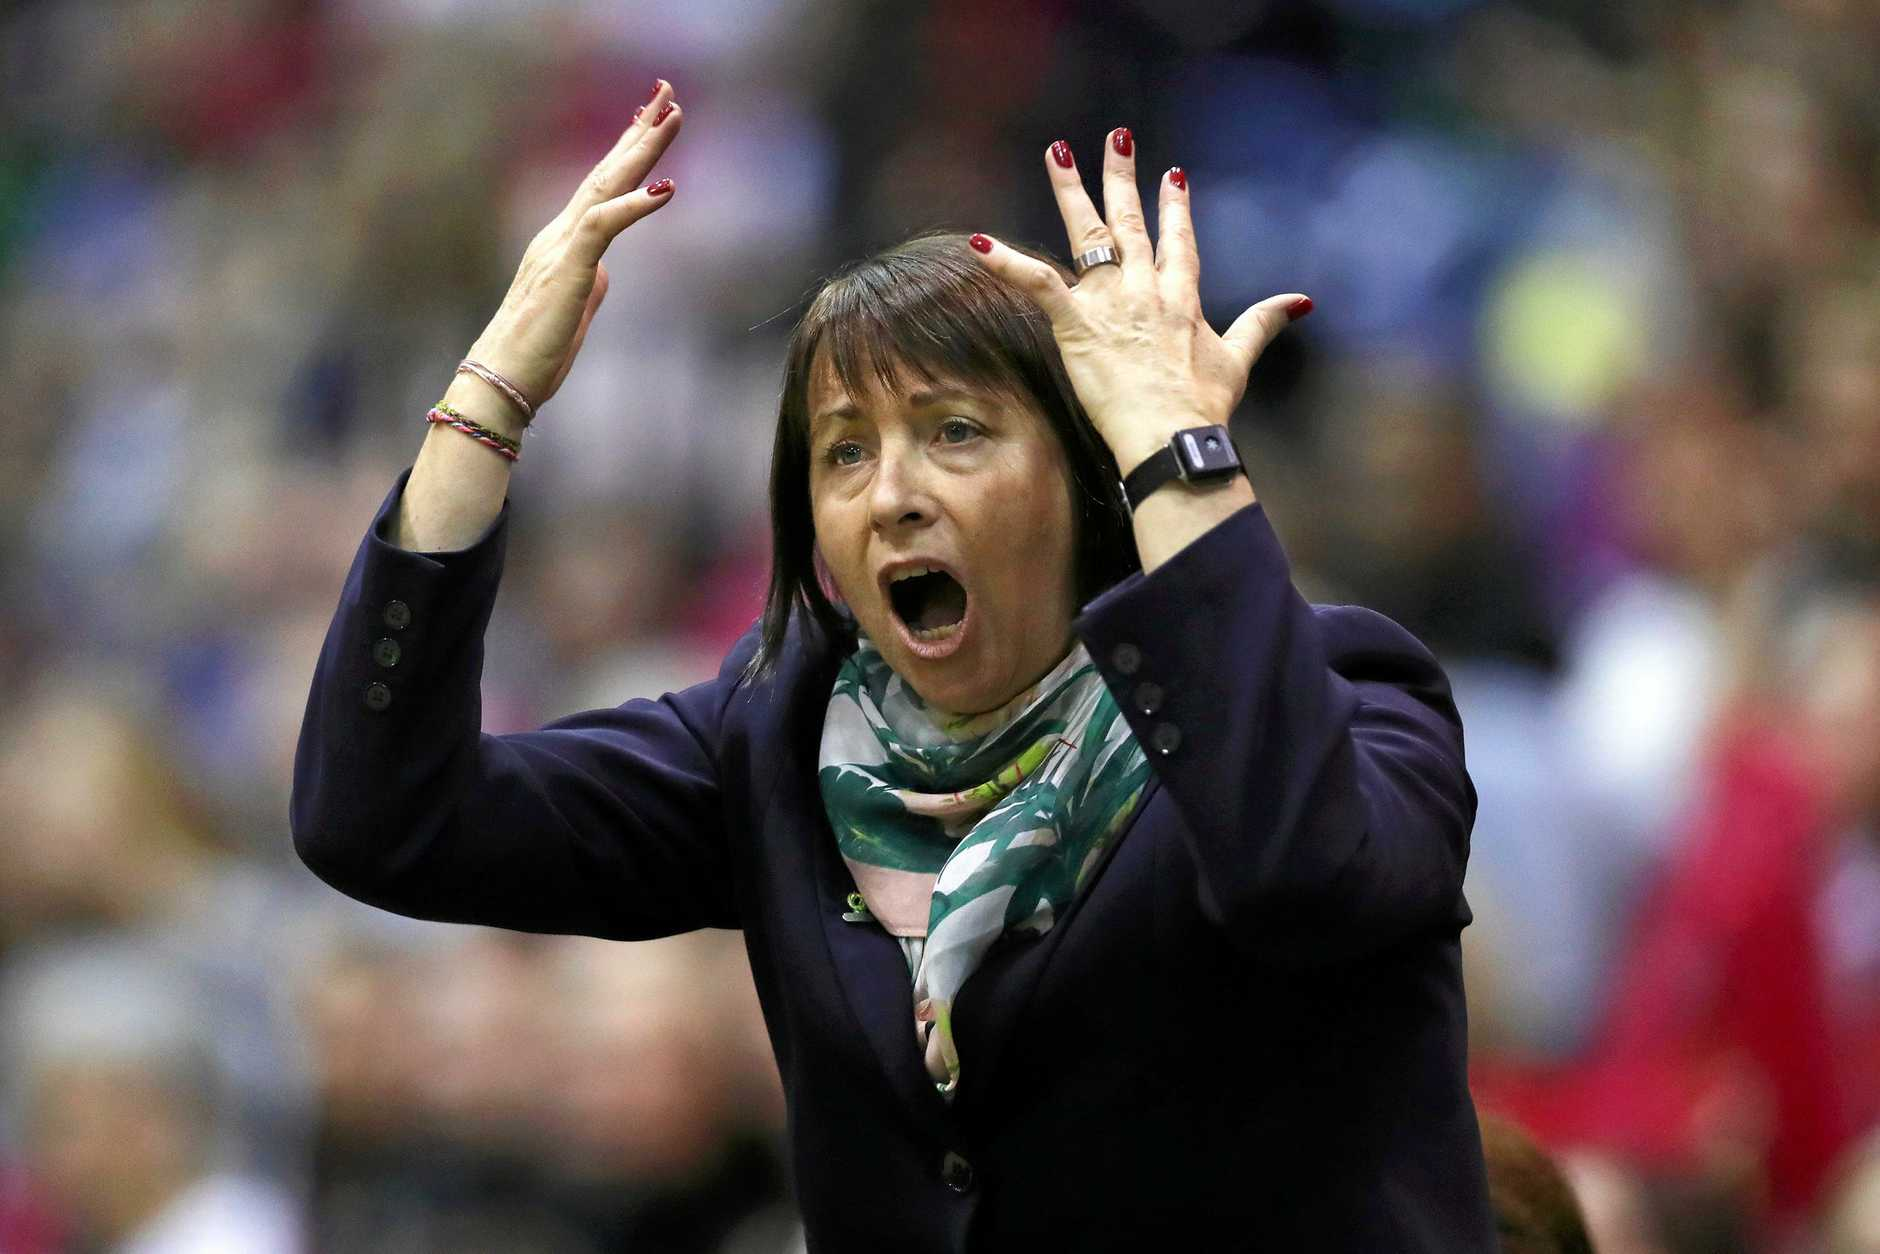 LONDON, ENGLAND - JANUARY 20:  Lisa Alexander, Head Coach of Australia gives her team instructions during the Vitality Netball International Series match between England Vitality Roses and Australian Diamonds, as part of the Netball Quad Series at Copper Box Arena on January 20, 2019 in London, England.  (Photo by Naomi Baker/Getty Images)